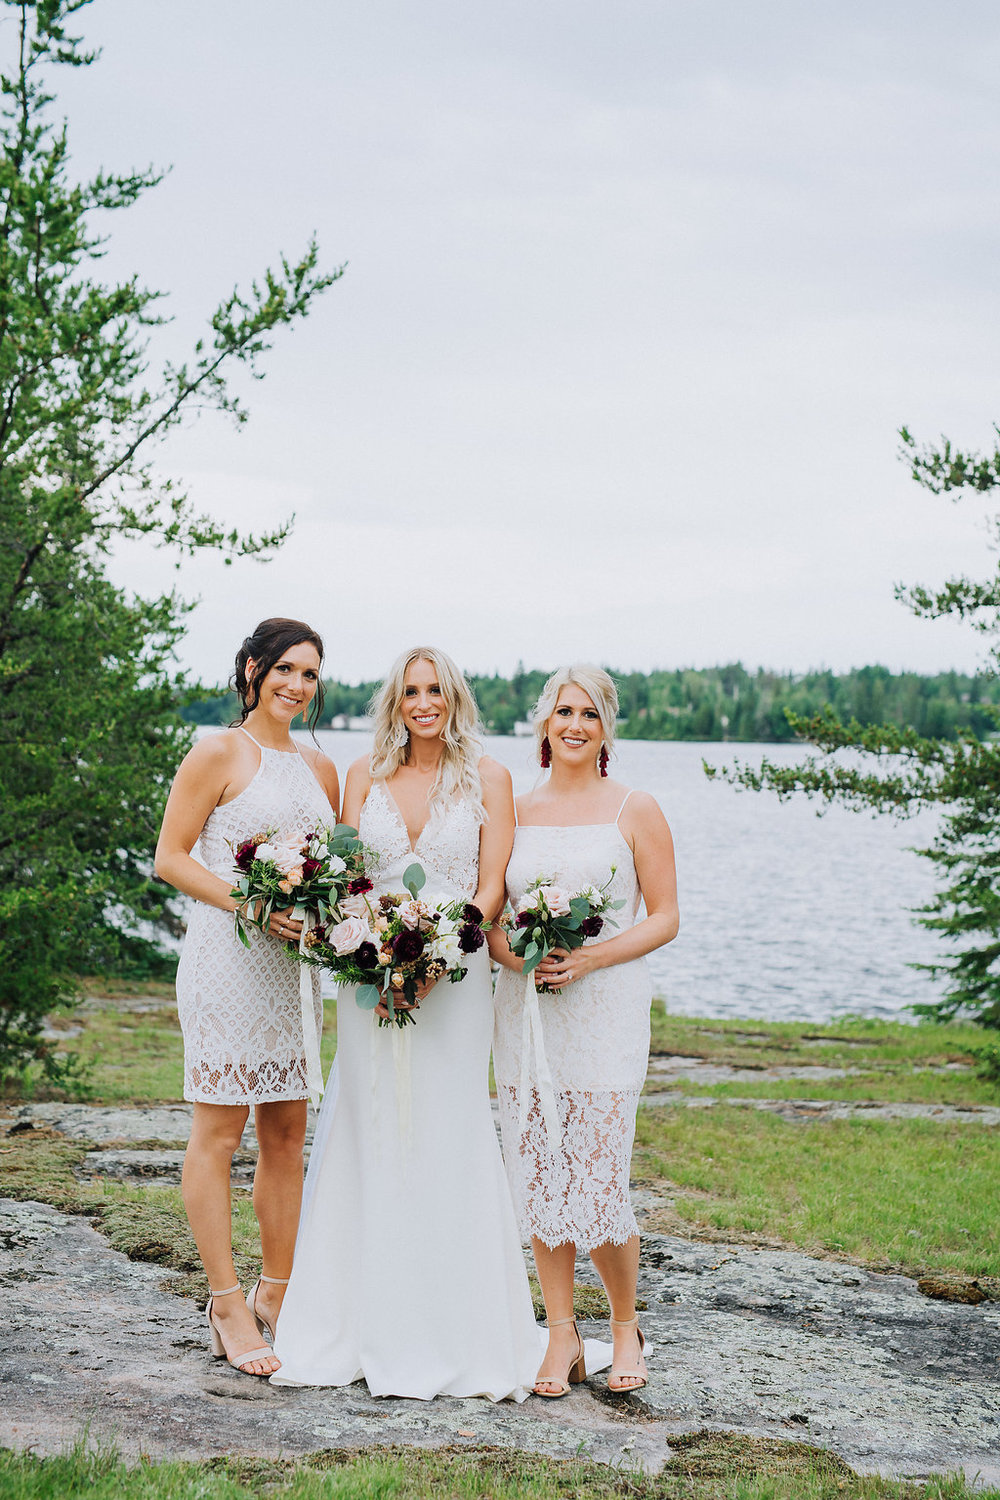 Lake of the Woods Wedding Flowers - Outdoor Lake Wedding Inspiration